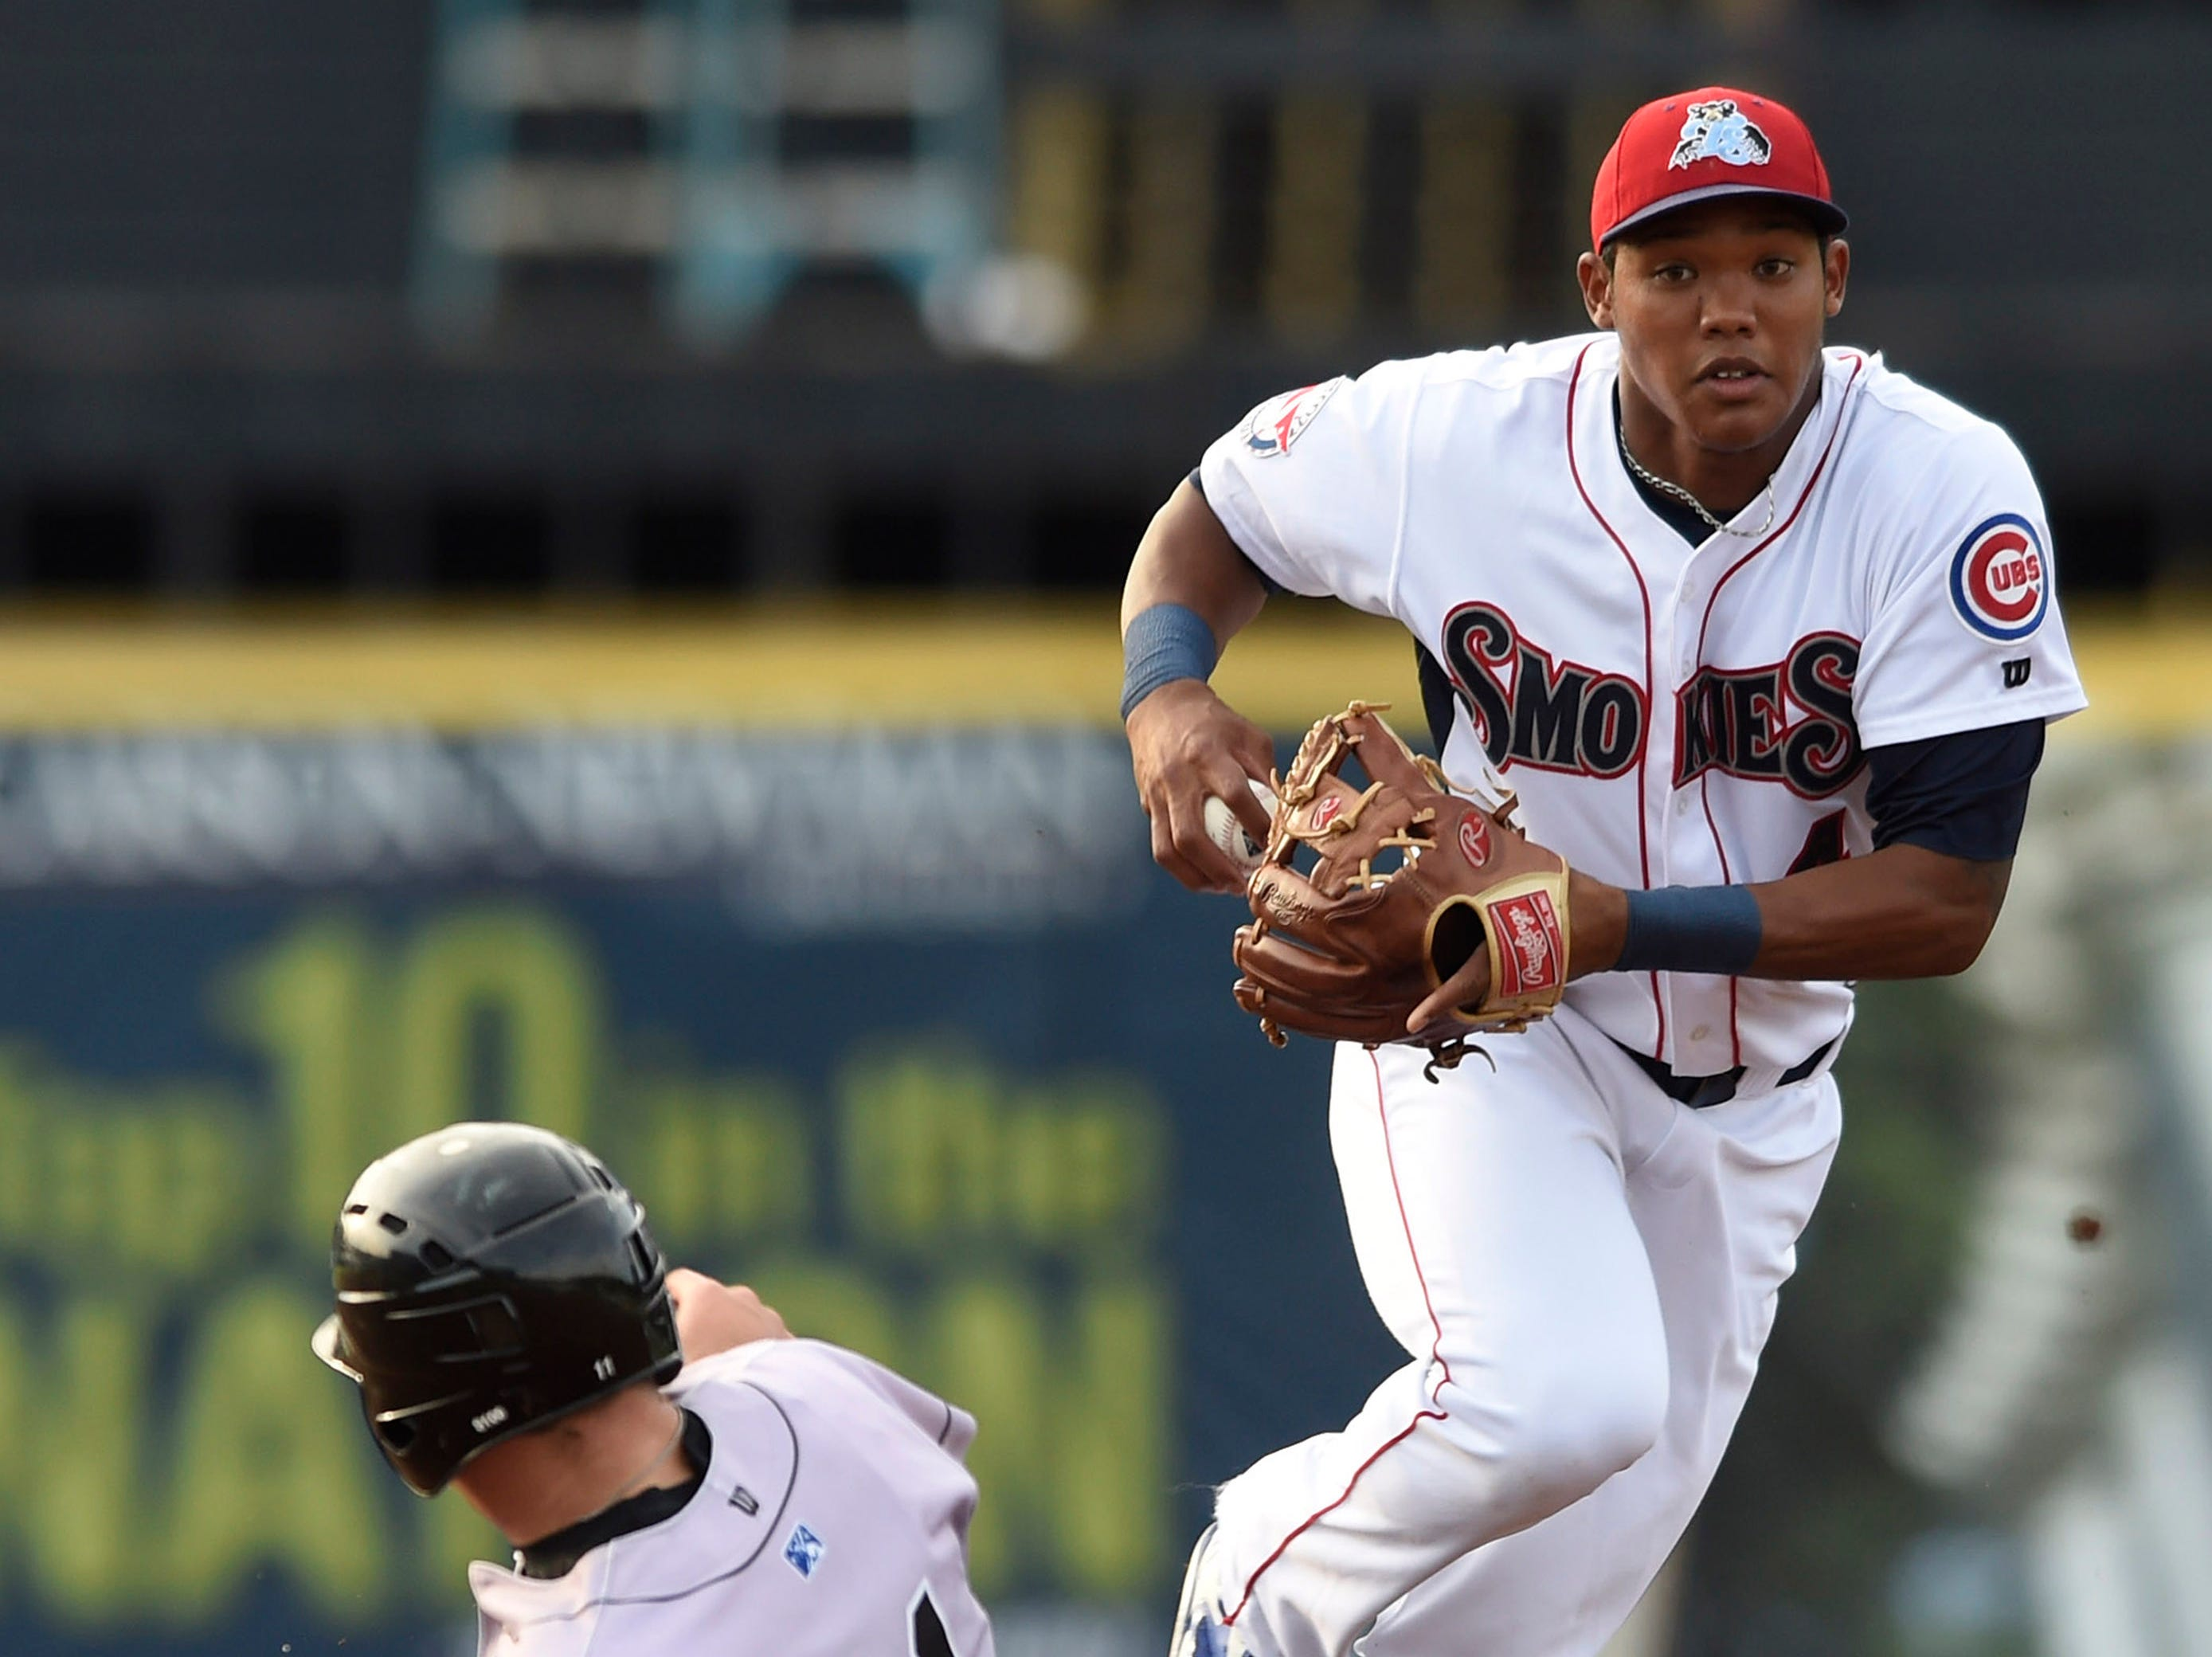 Tennessee Smokies shortstop Addison Russell (4), right, gets Jacksonville Suns catcher J.T. Realmuto (11) out at second base before throwing to first for a double play during a baseball game against at Smokies Park in Knoxville on Thursday, July 10, 2014.